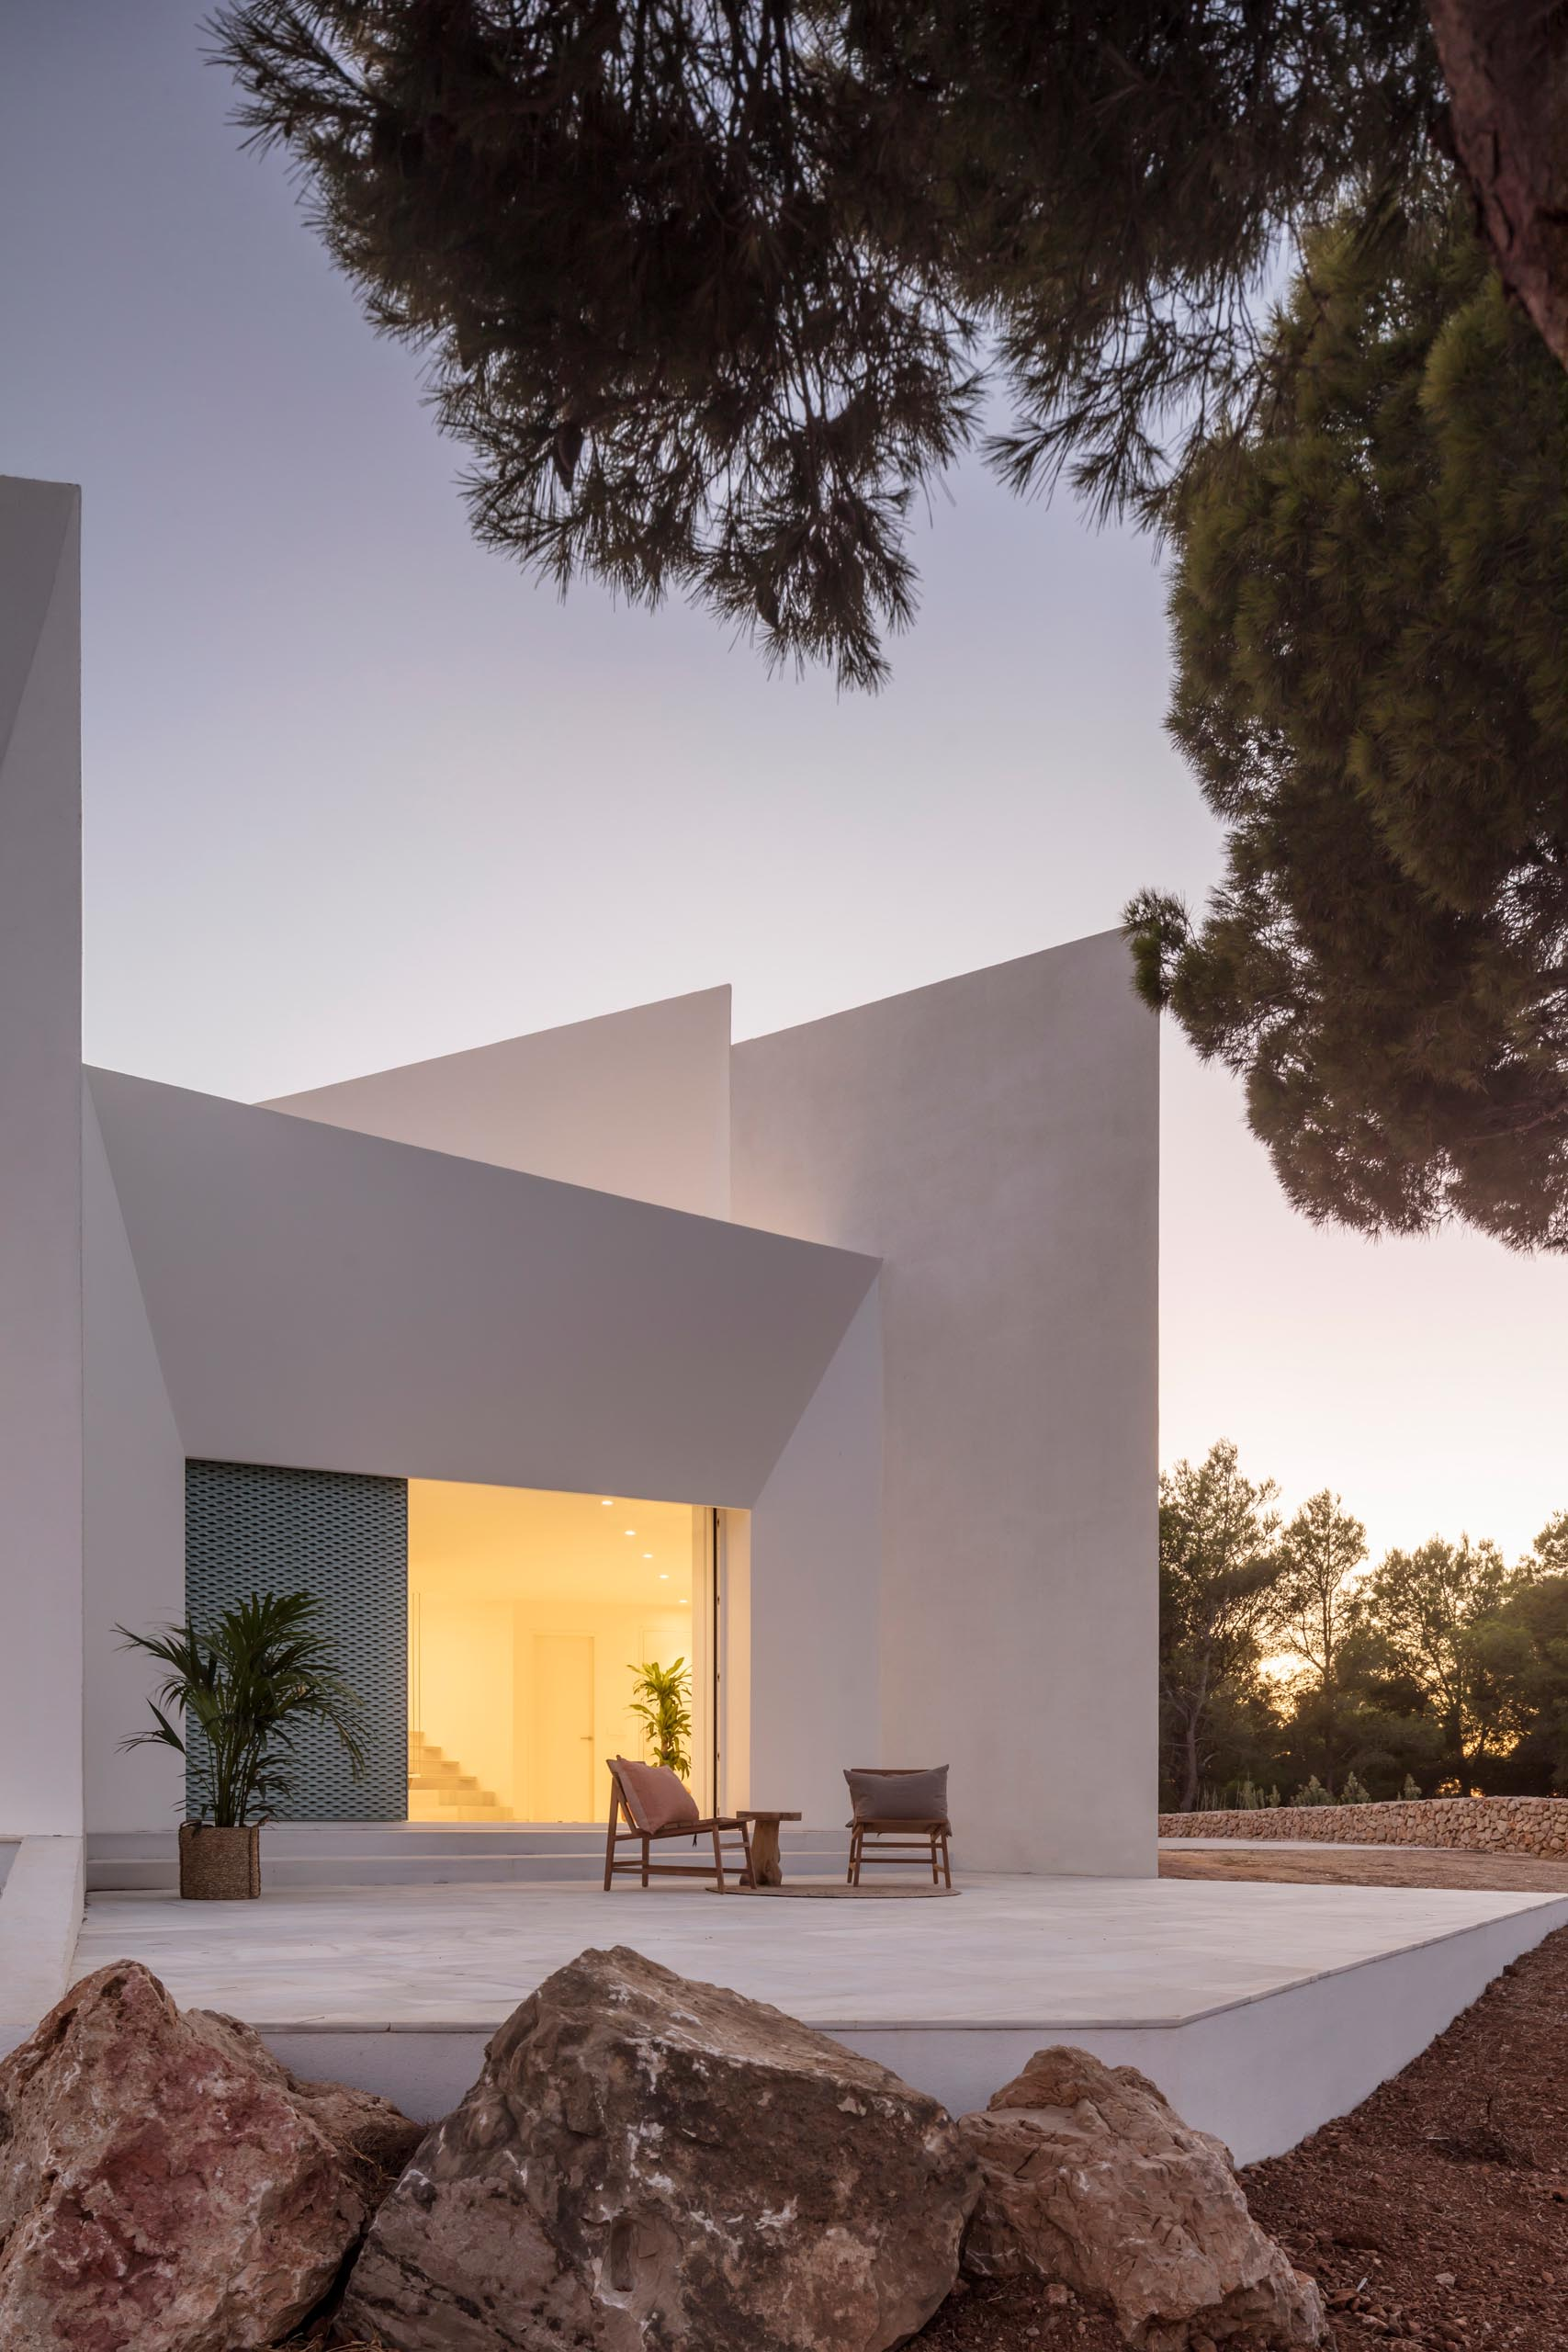 A modern white home with pastel turquoise perforated aluminum screens and multiple patios.